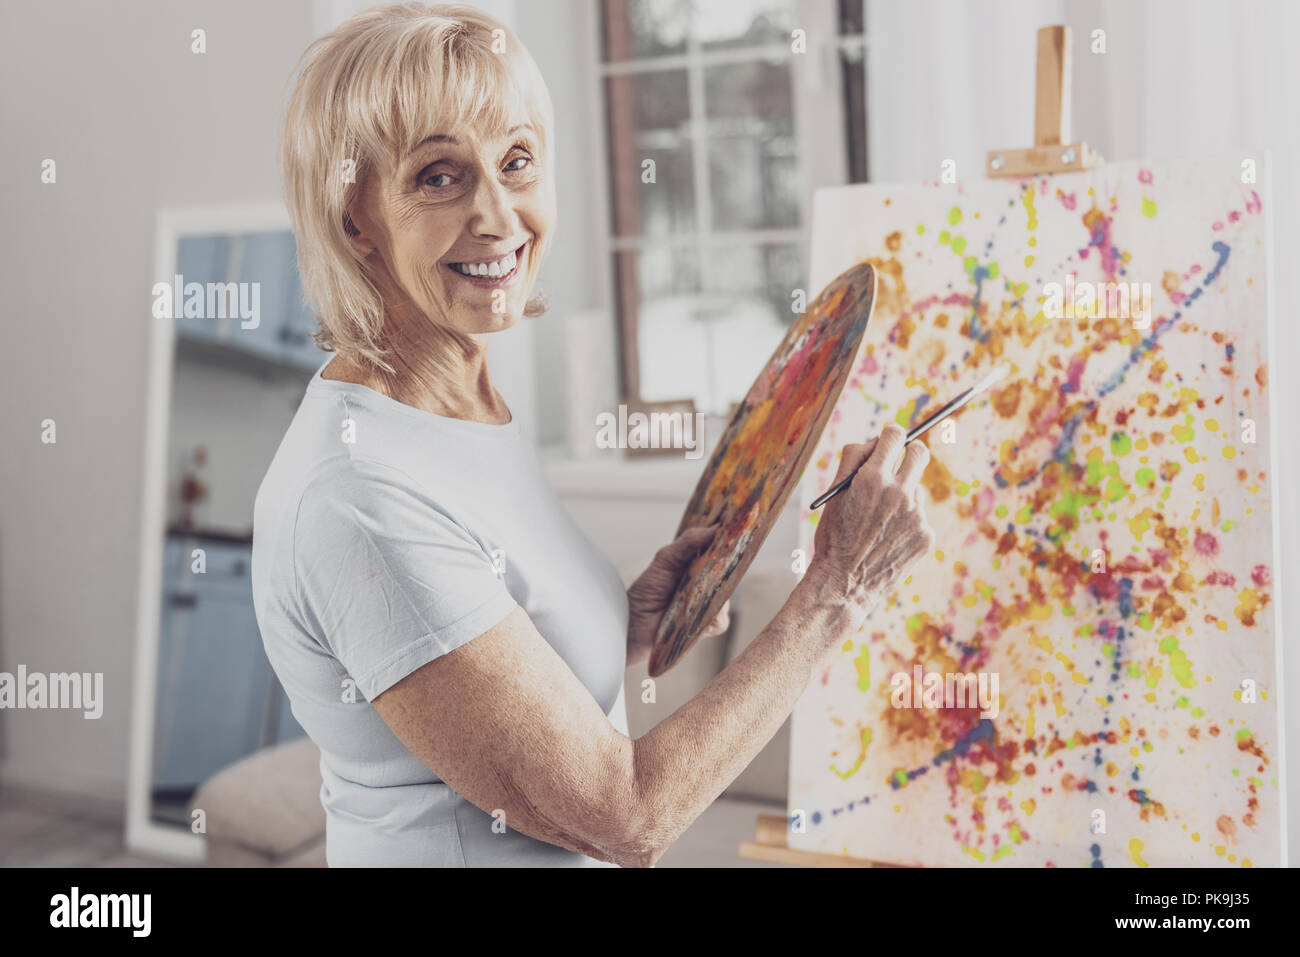 Smiling woman with facial wrinkles working with painting brush - Stock Image